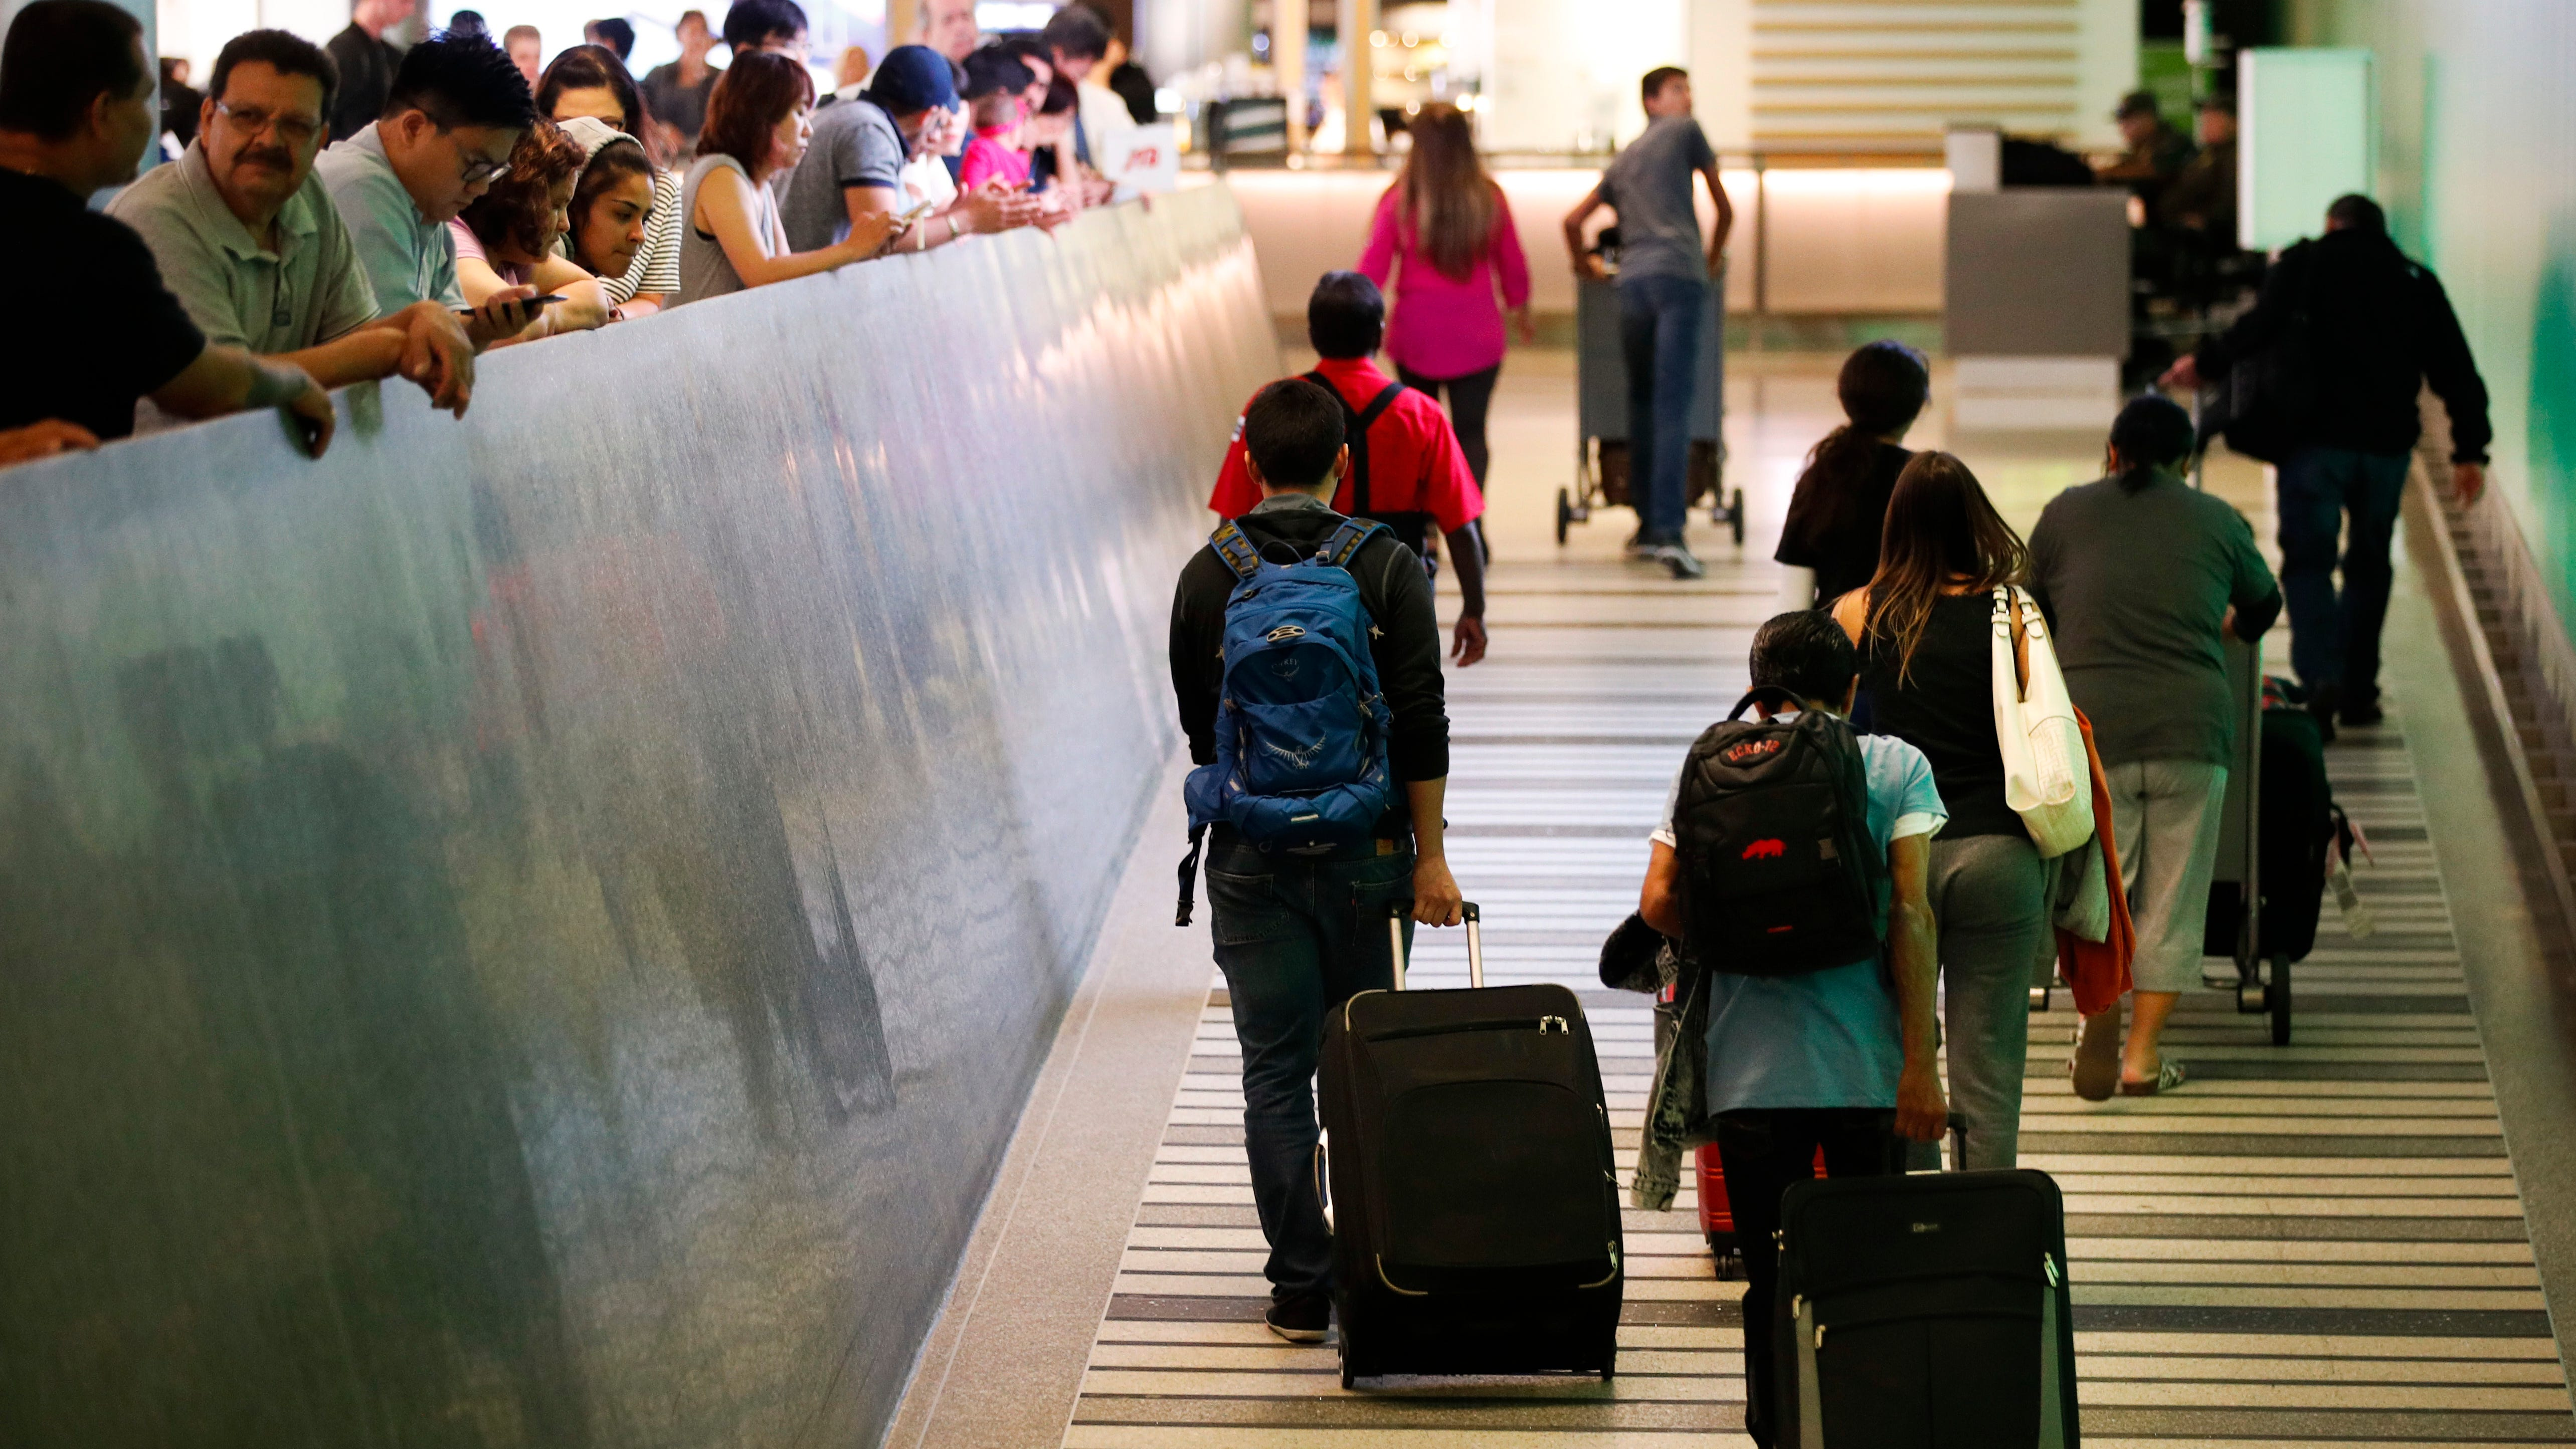 Image result for Travelers Warned Again of Measles Exposure at LAX After 3rd Confirmed Case at Airport